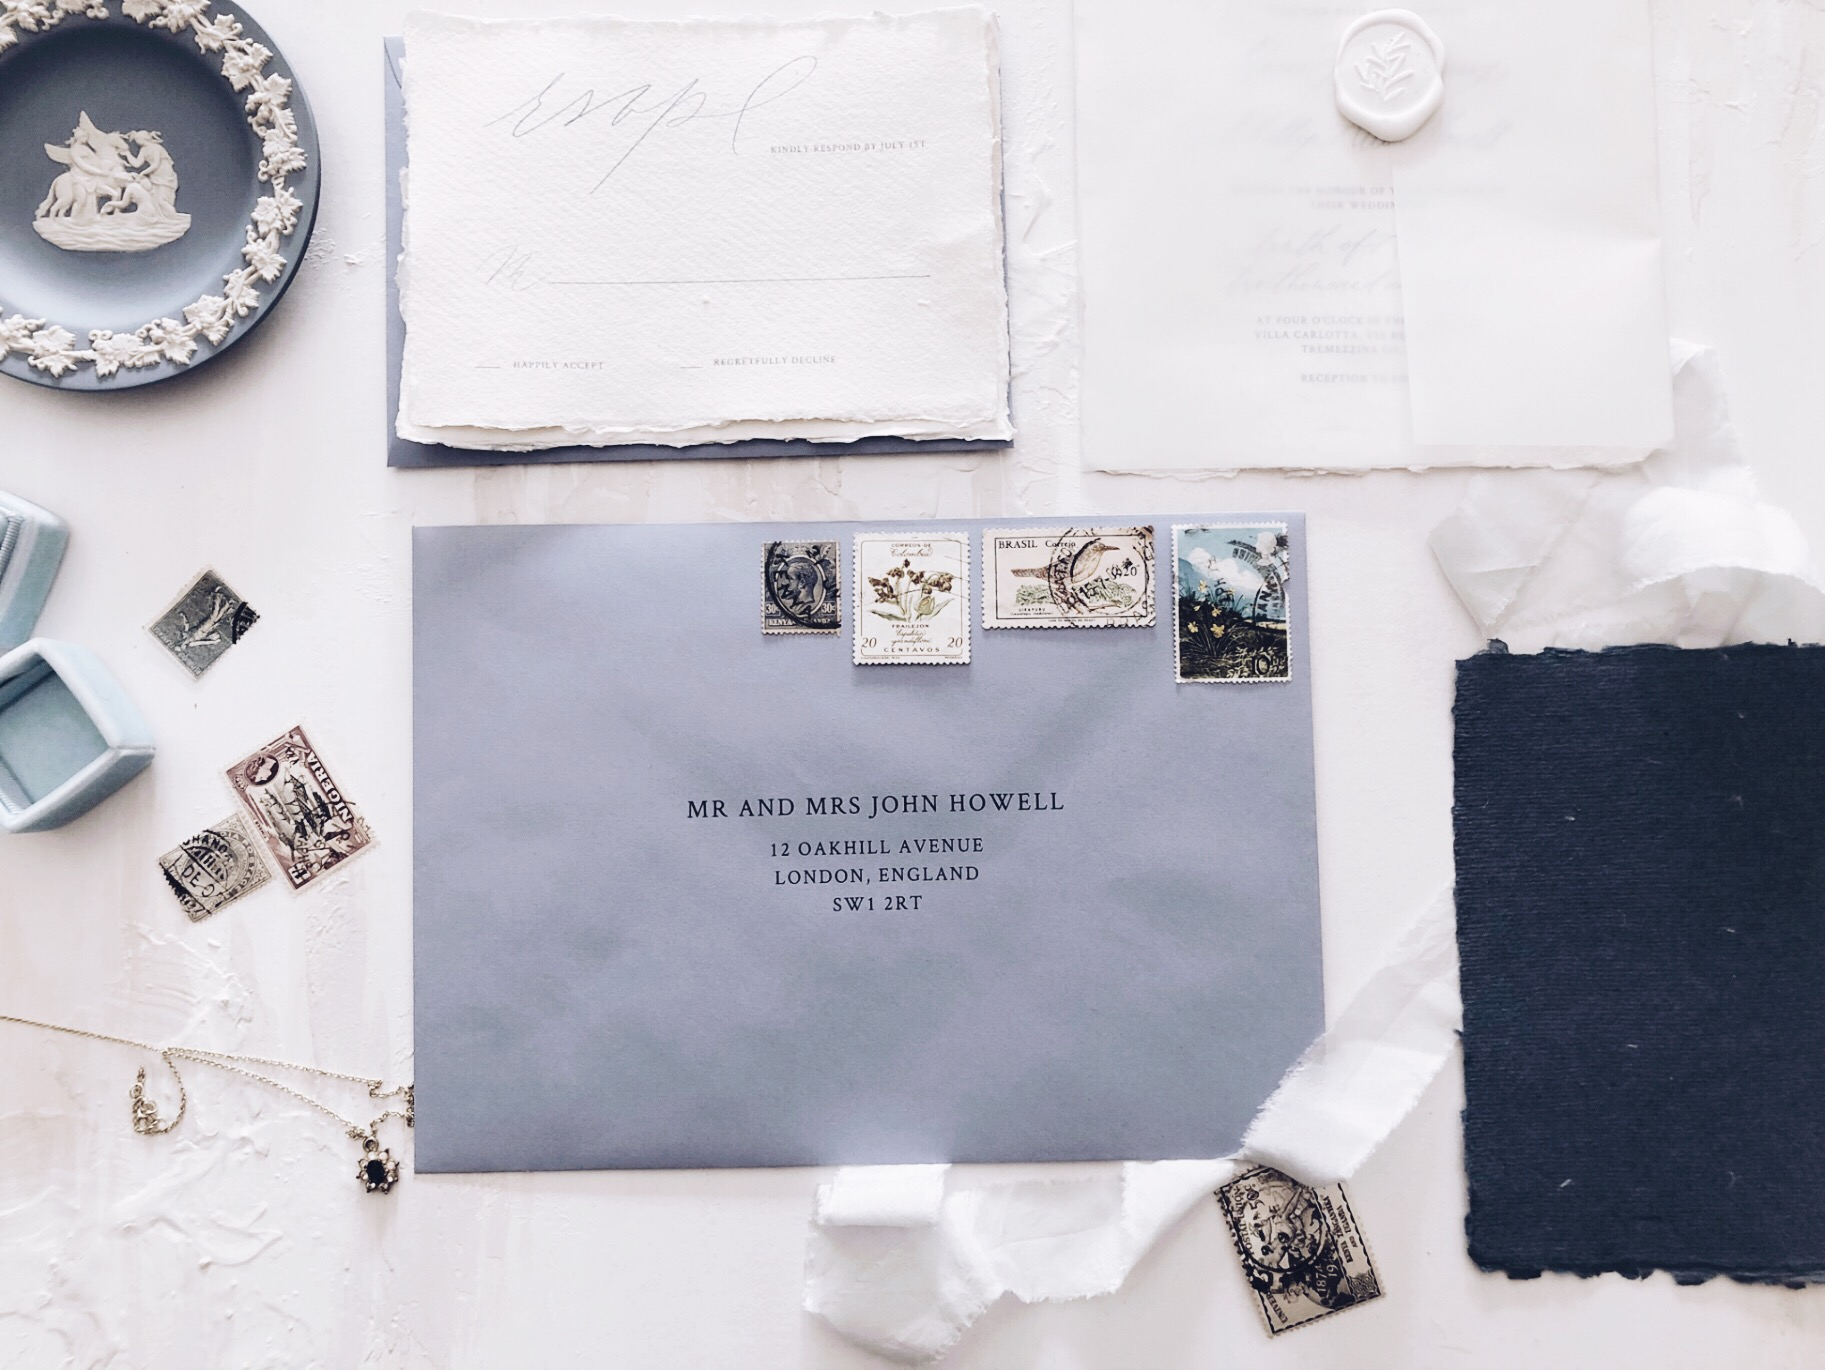 wedding_envelopes.JPG